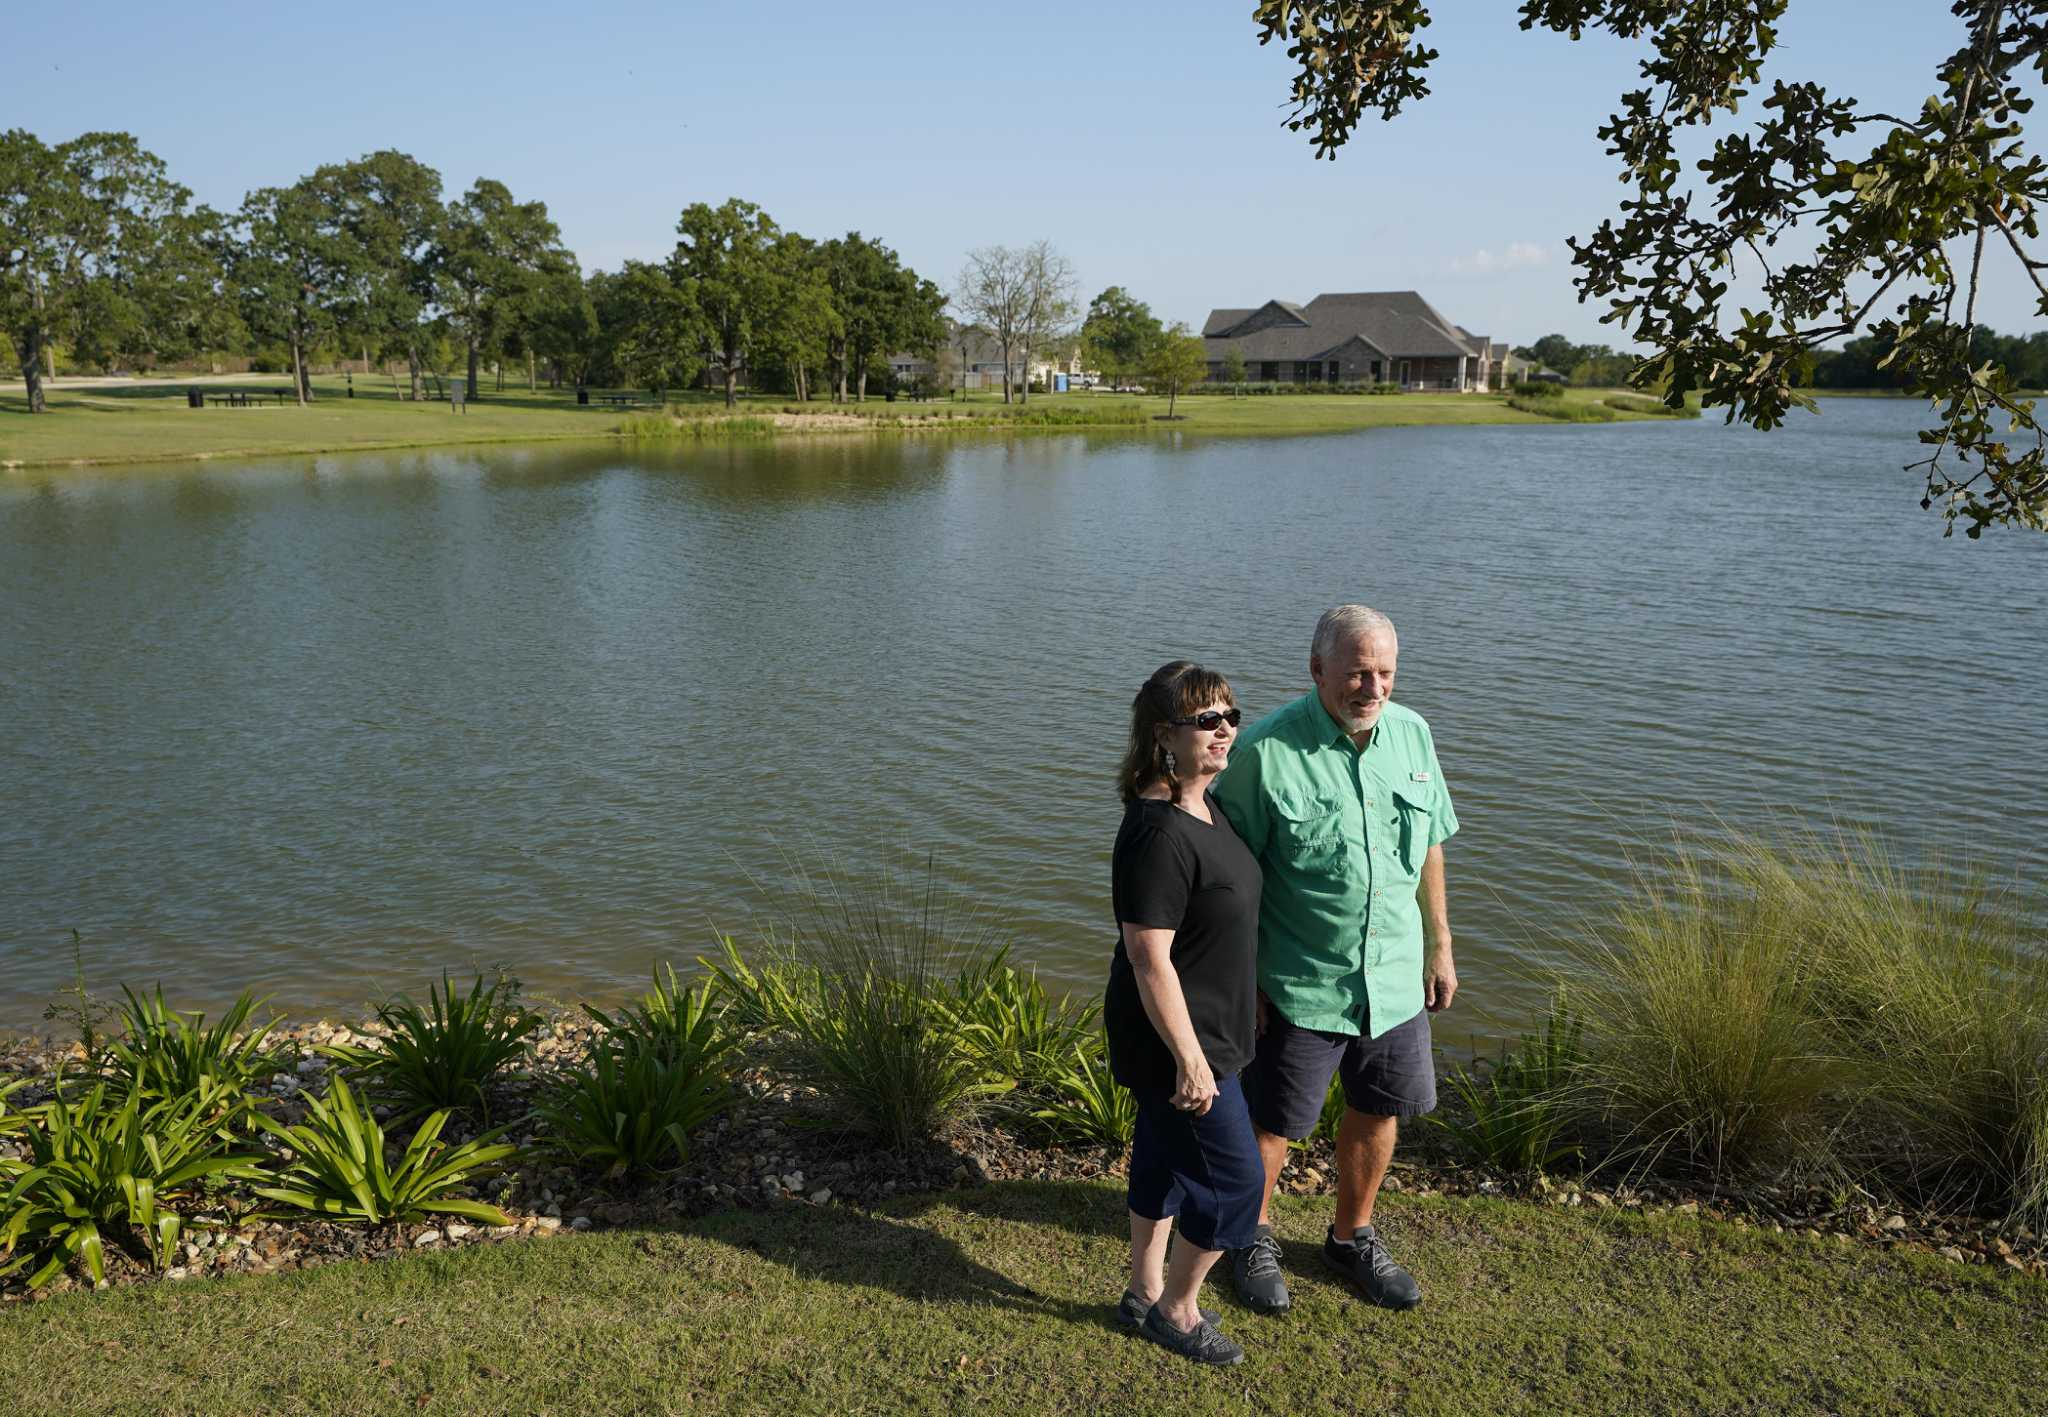 People are ditching Houston for 'green pastures' because of city's COVID surge